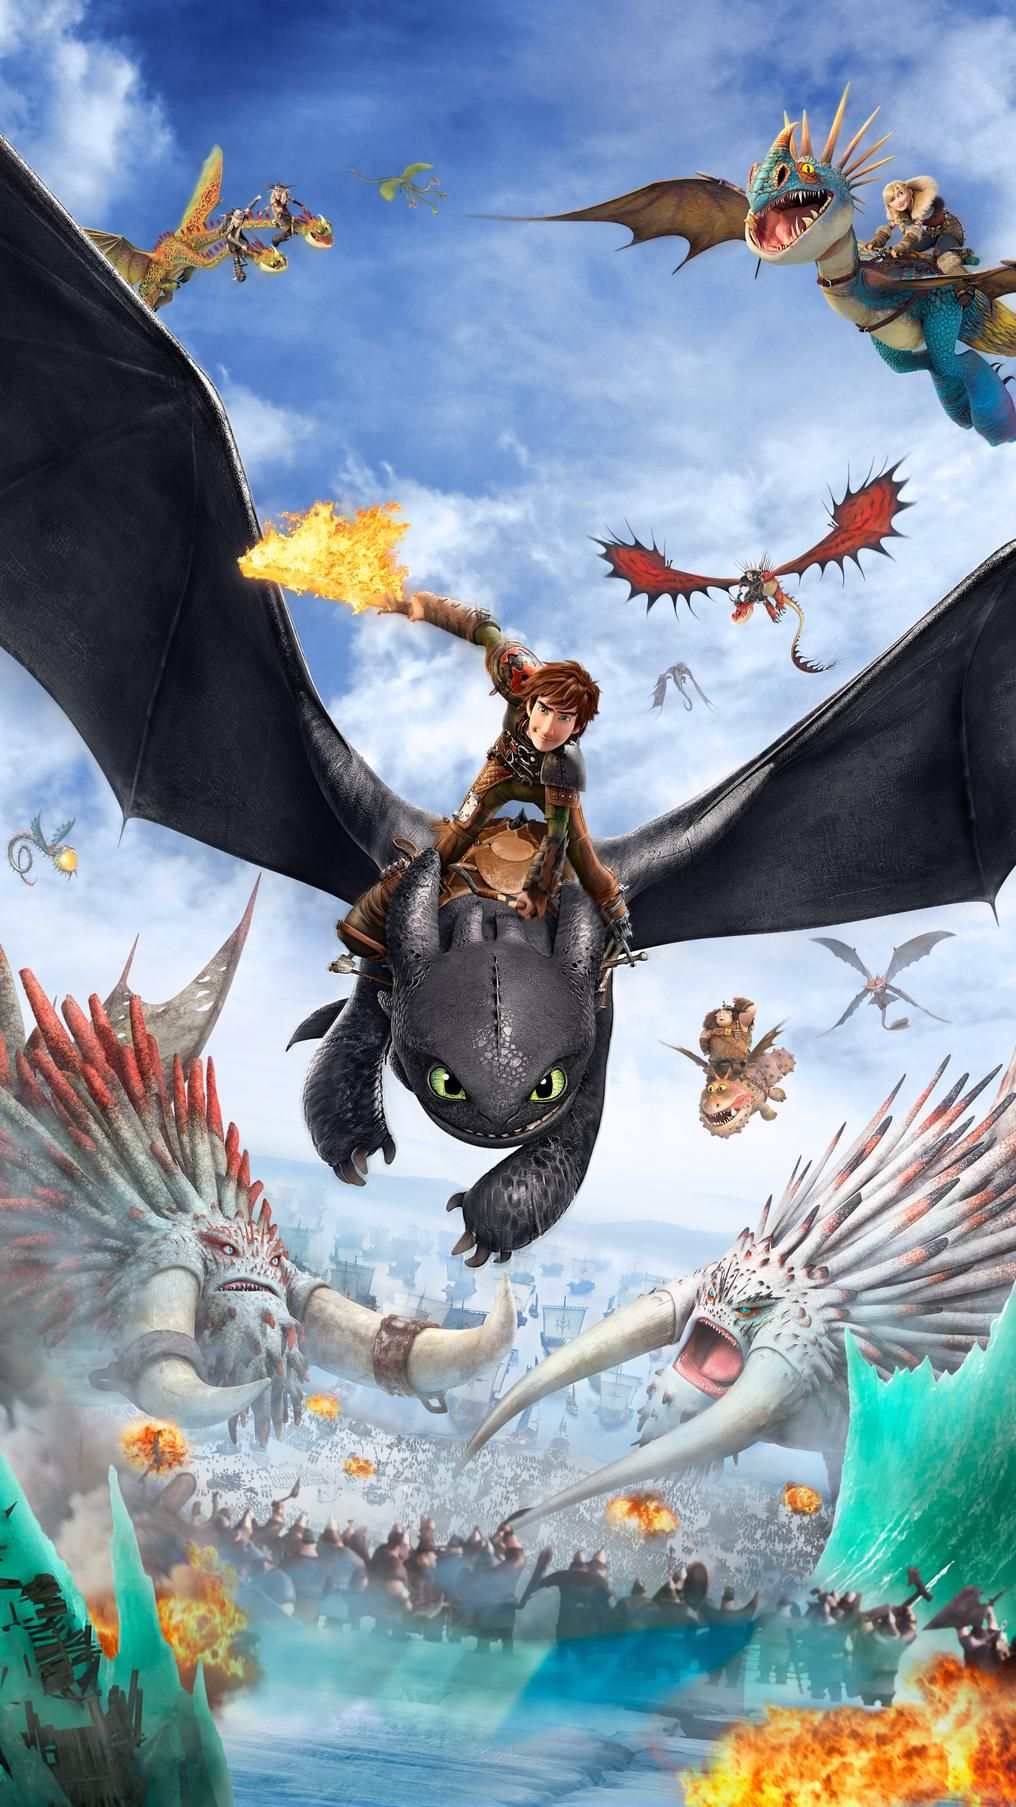 How To Train Your Dragon 2 2014 Phone Wallpaper Ekkor 2020